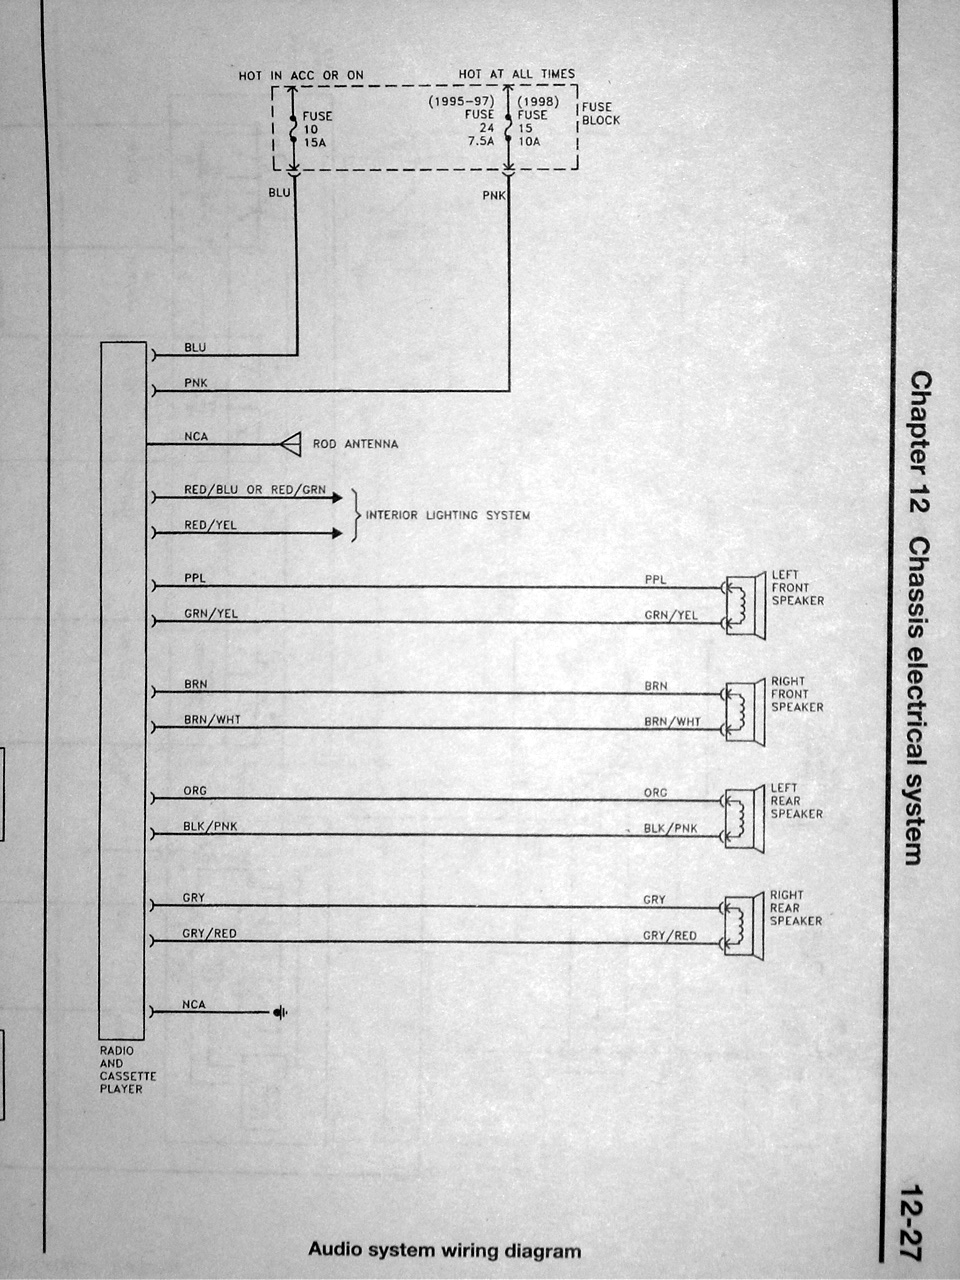 1998 Nissan Sentra Air Conditioner Wiring Diagram | Wiring ... on 2005 nissan altima heater unit diagram, nissan murano gear assembly, re0f09b valve body diagram, nissan schematic diagram, 1990 240sx egr diagram, nissan parts diagram, nissan 4wd diagram, nissan air conditioning diagram, nissan murano engine schematics, nissan transmission diagram, nissan murano wiring diagrams, nissan engine diagram, 2011 nissan maxima shift knob diagram, nissan battery diagram, nissan altima tensioner diagram, nissan awd diagram, 2007 nissan altima intake system diagram, jeep wrangler transfer case diagram, transmission parts diagram,